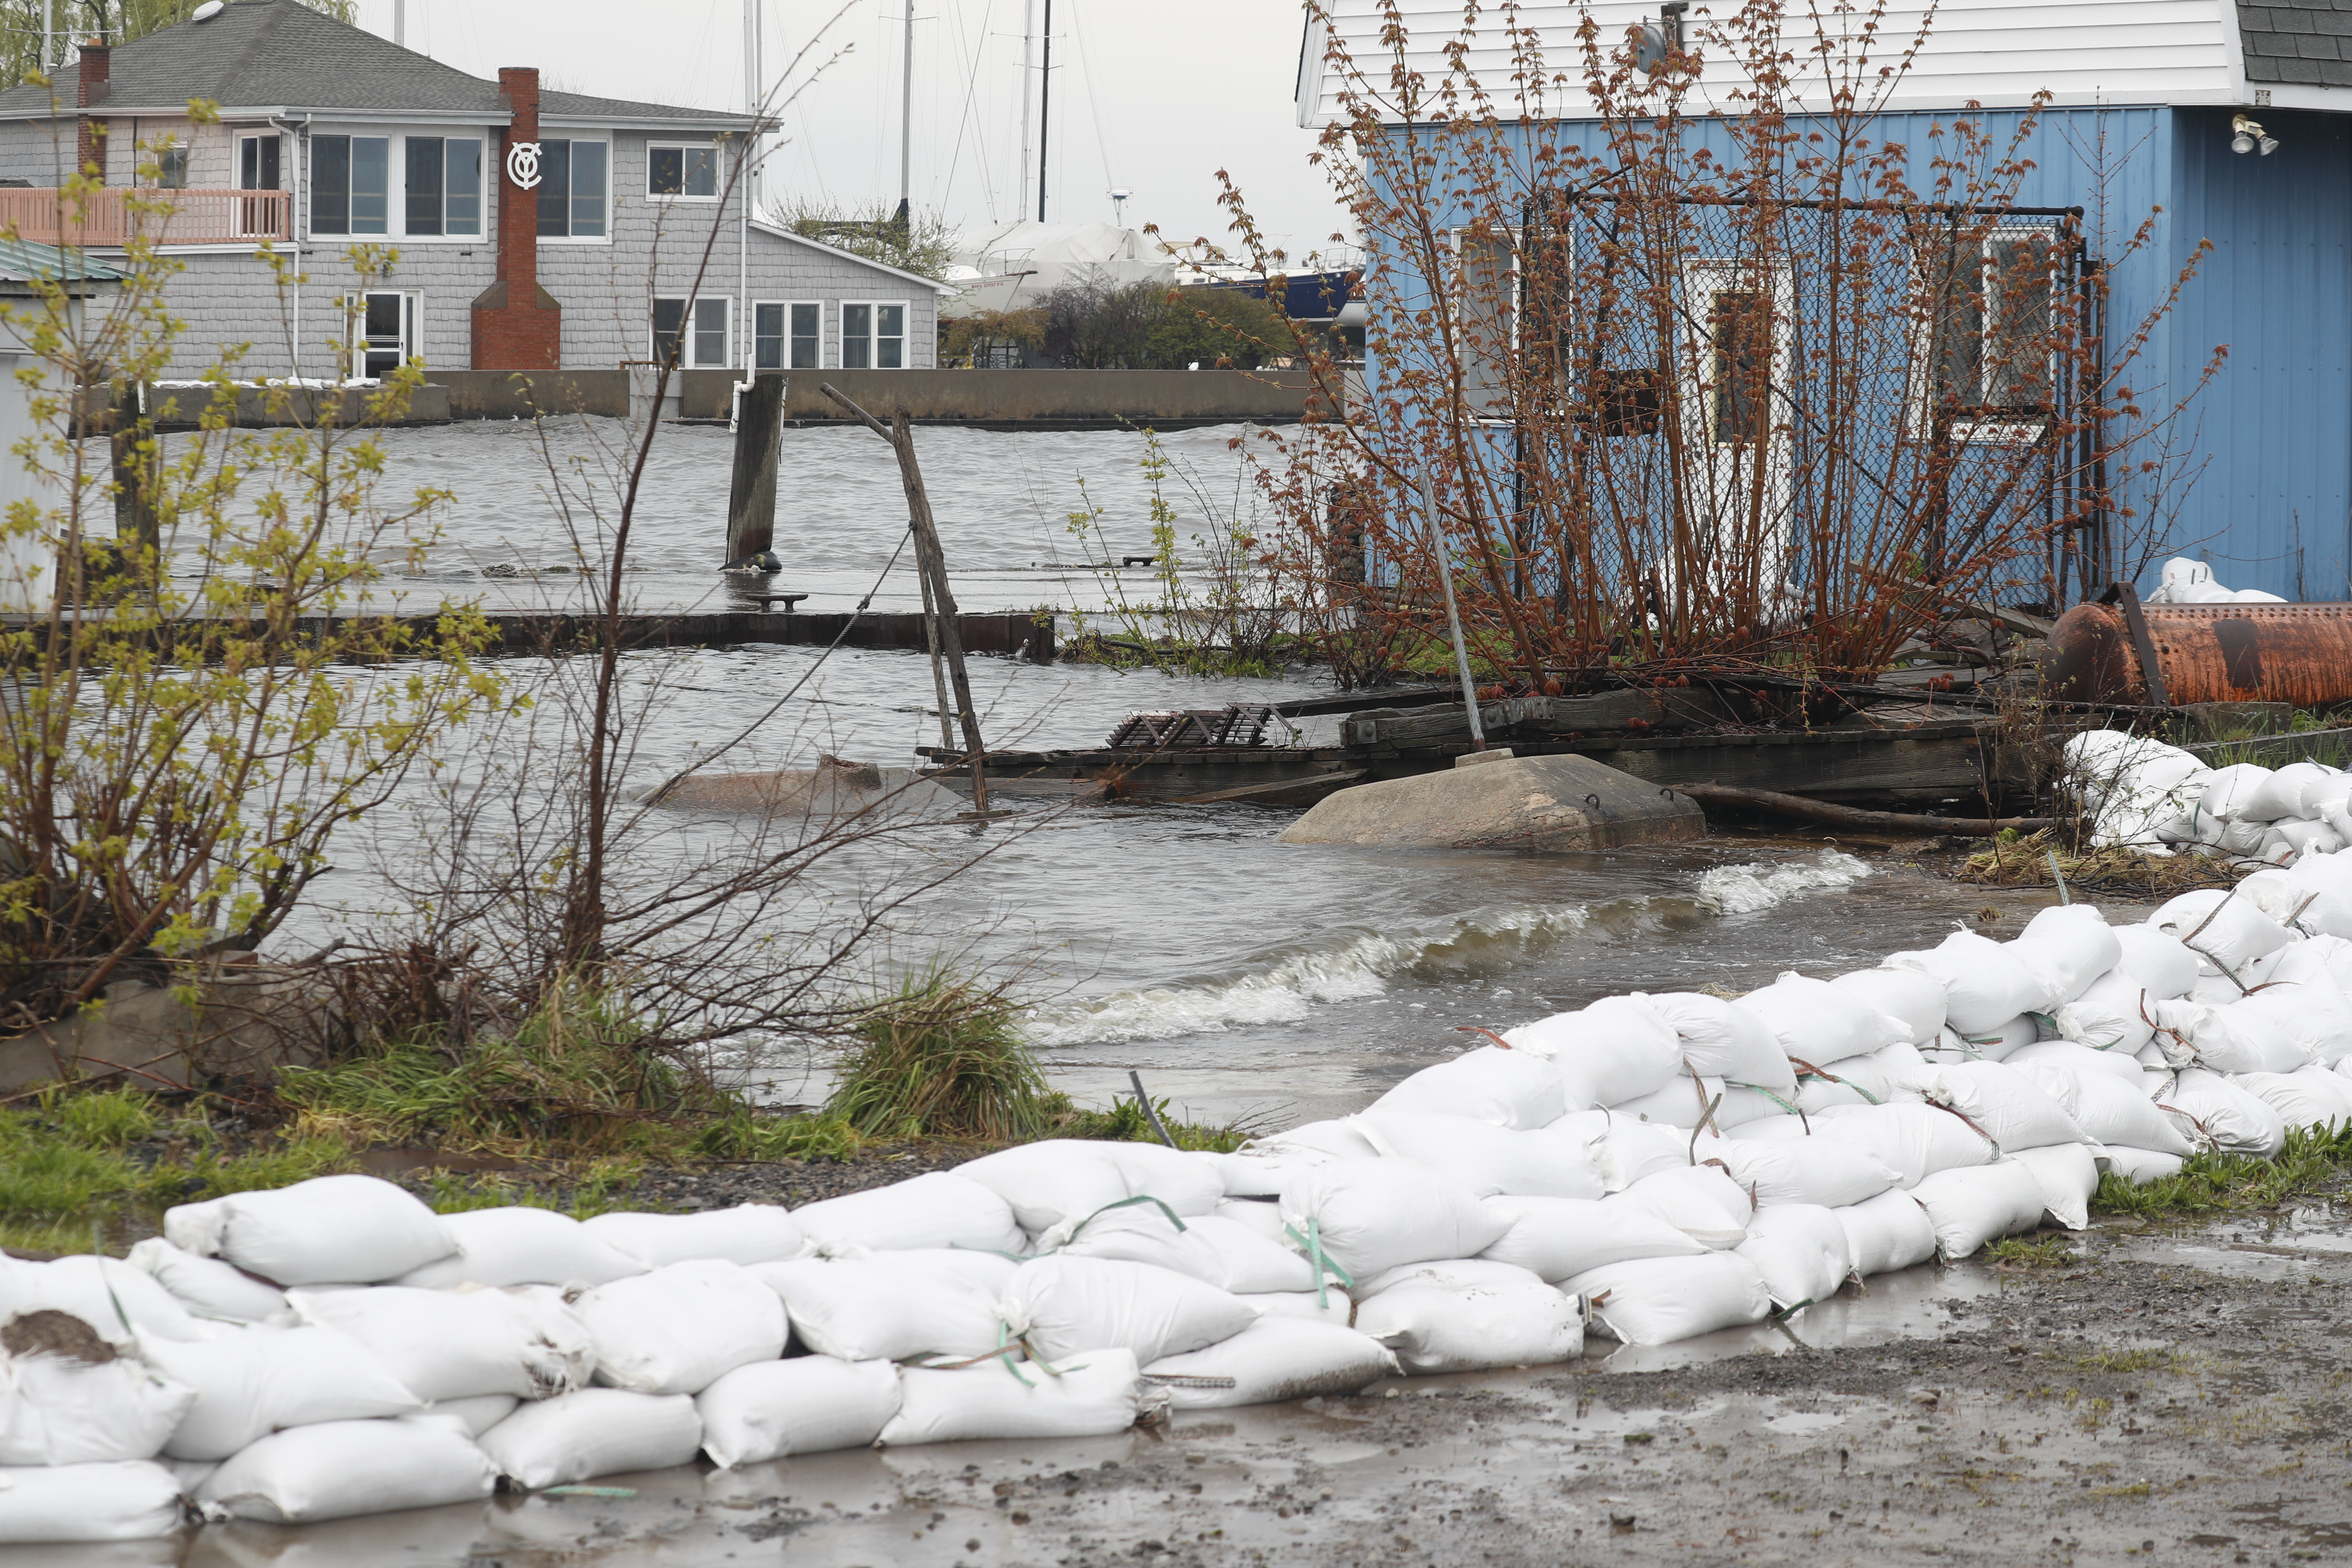 Sand bags sit alongside properties near the mouth of 18 Mile Creek at Lake Ontario to keep from flooding in Olcott, N.Y. on  Monday May 1, 2017. =(John Hickey/Buffalo News)